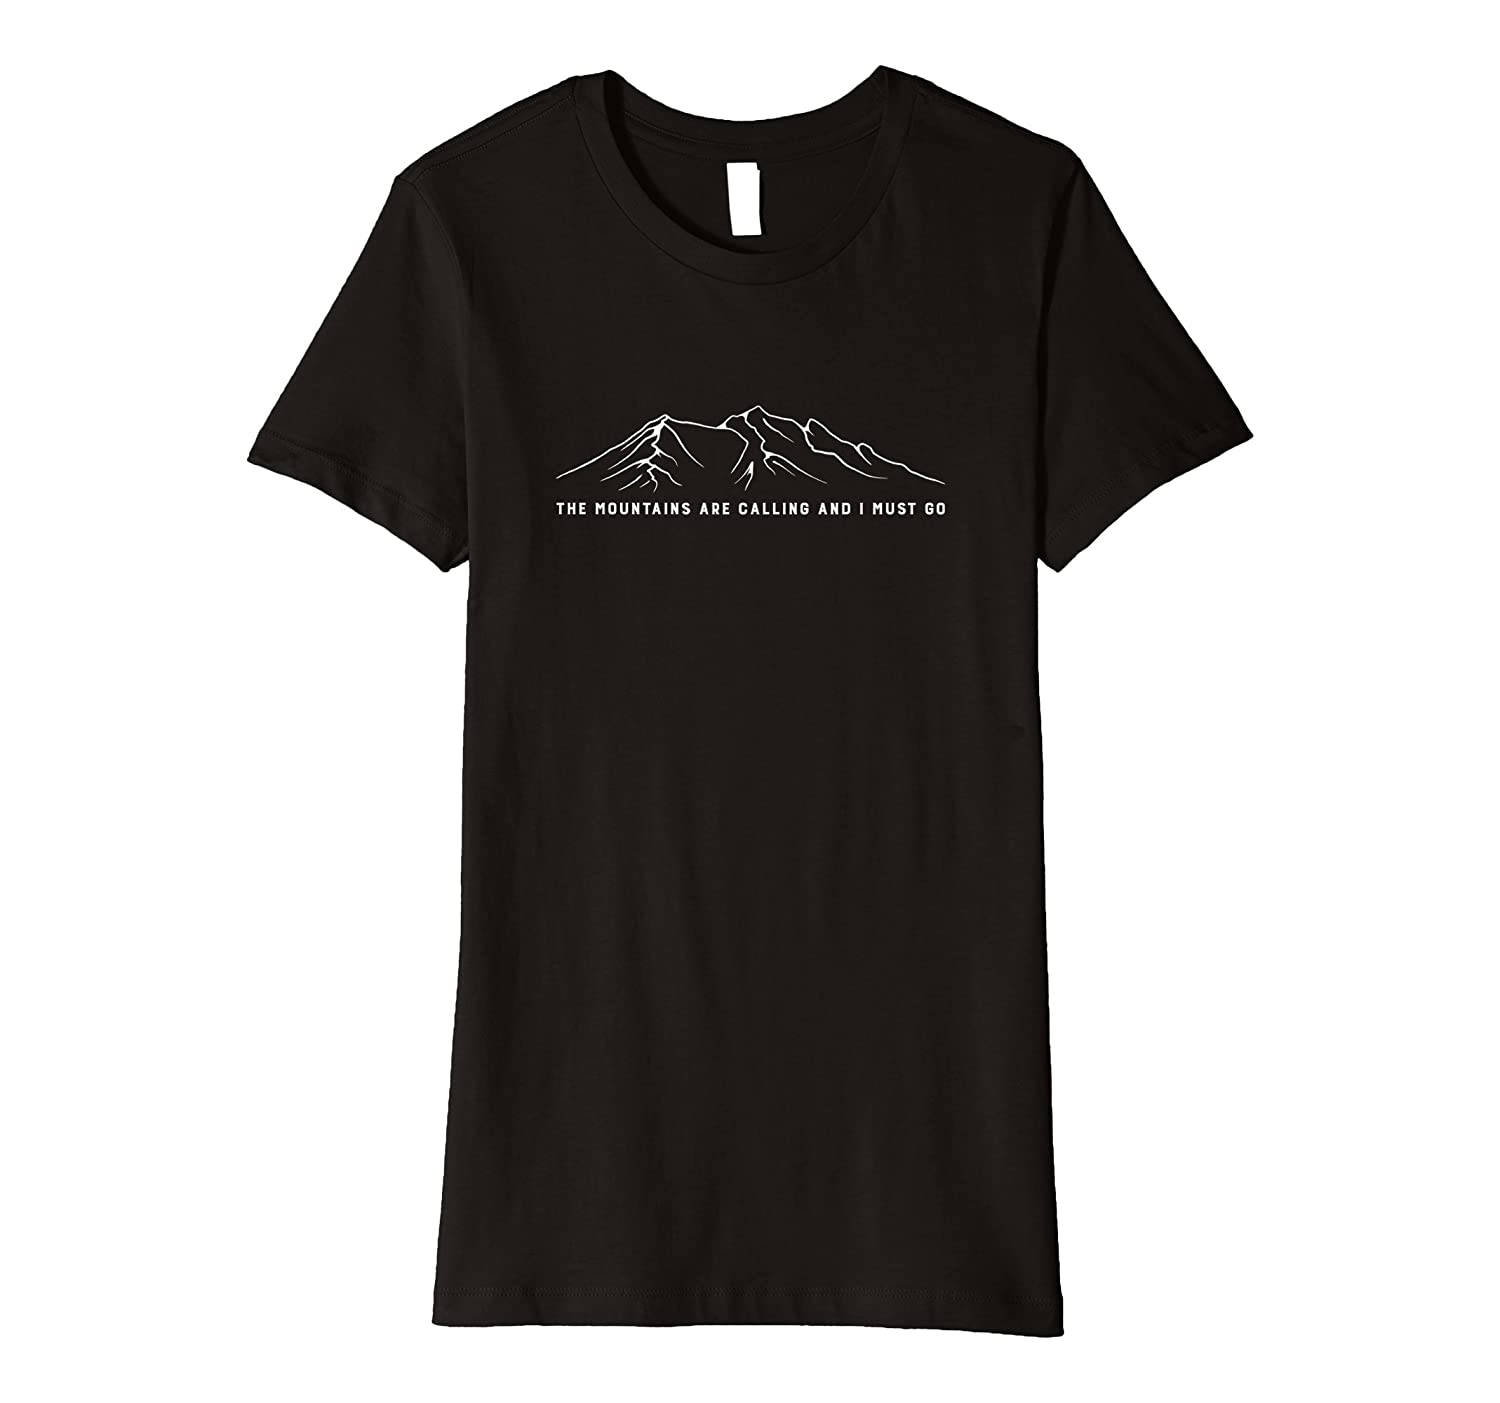 """The mountains are calling and I must go"" Shirt"